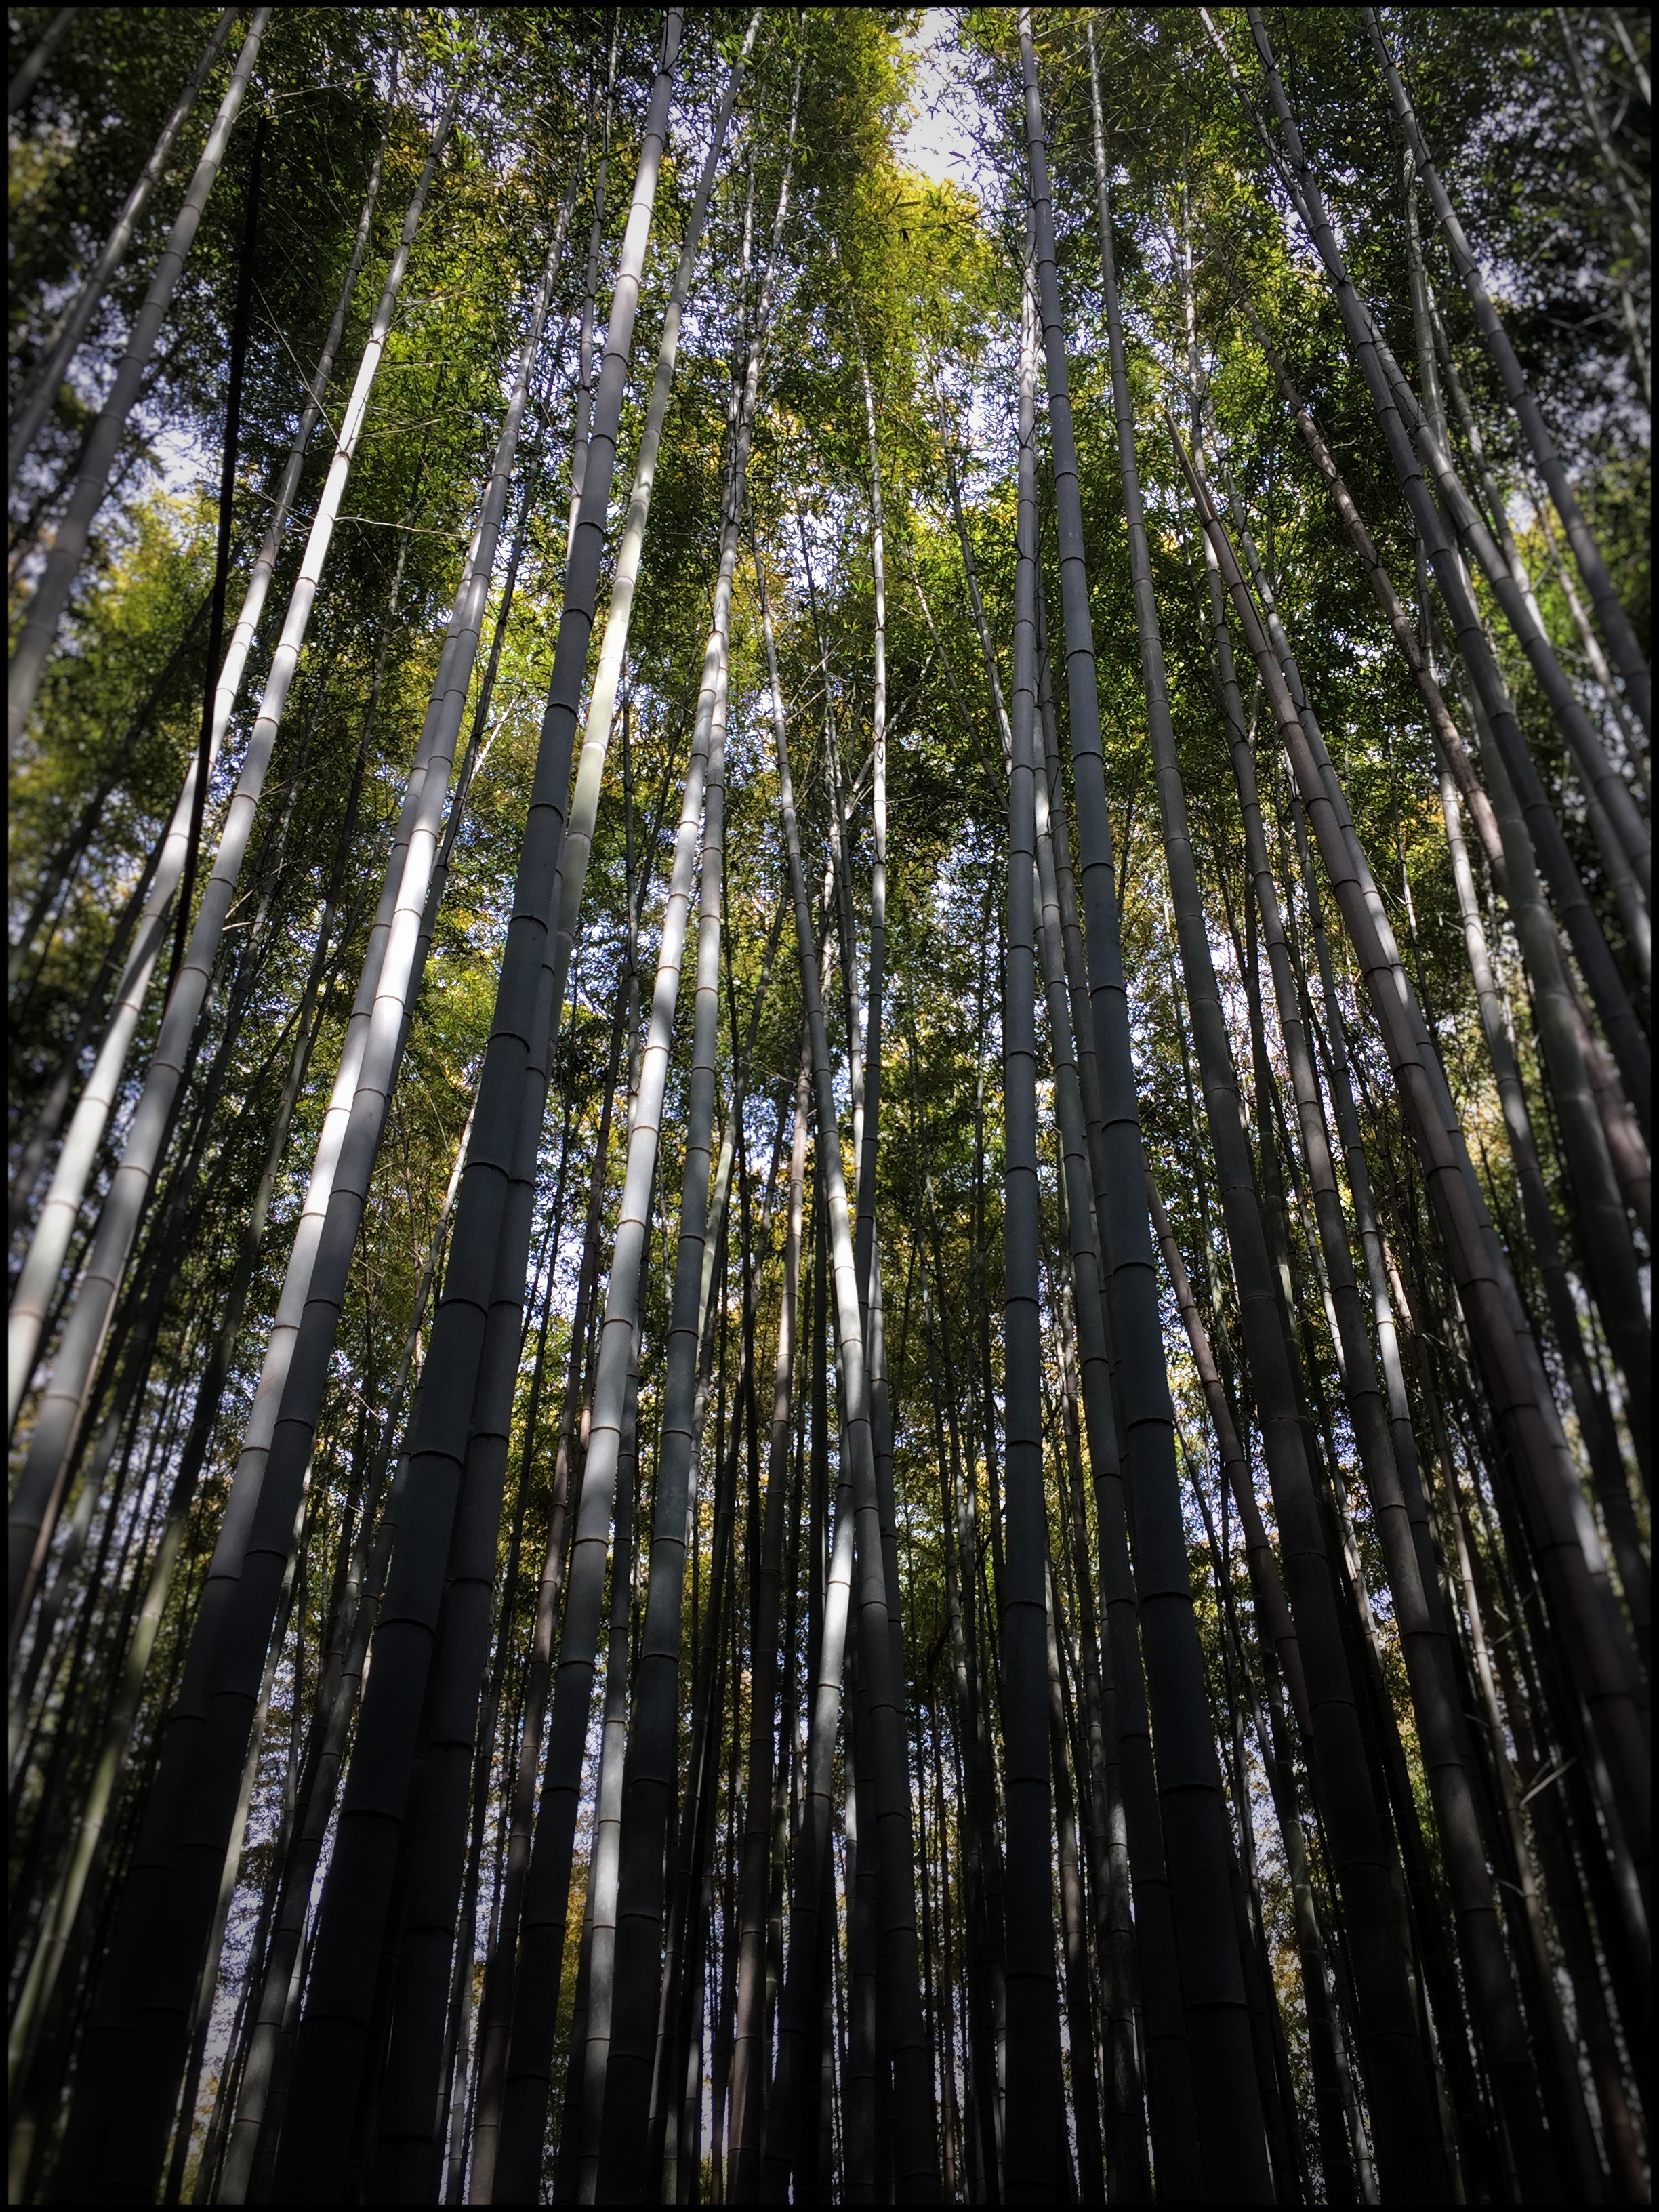 Towering heights of bamboo  | EAT.PRAY.MOVE Yoga | Kyoto, Japan